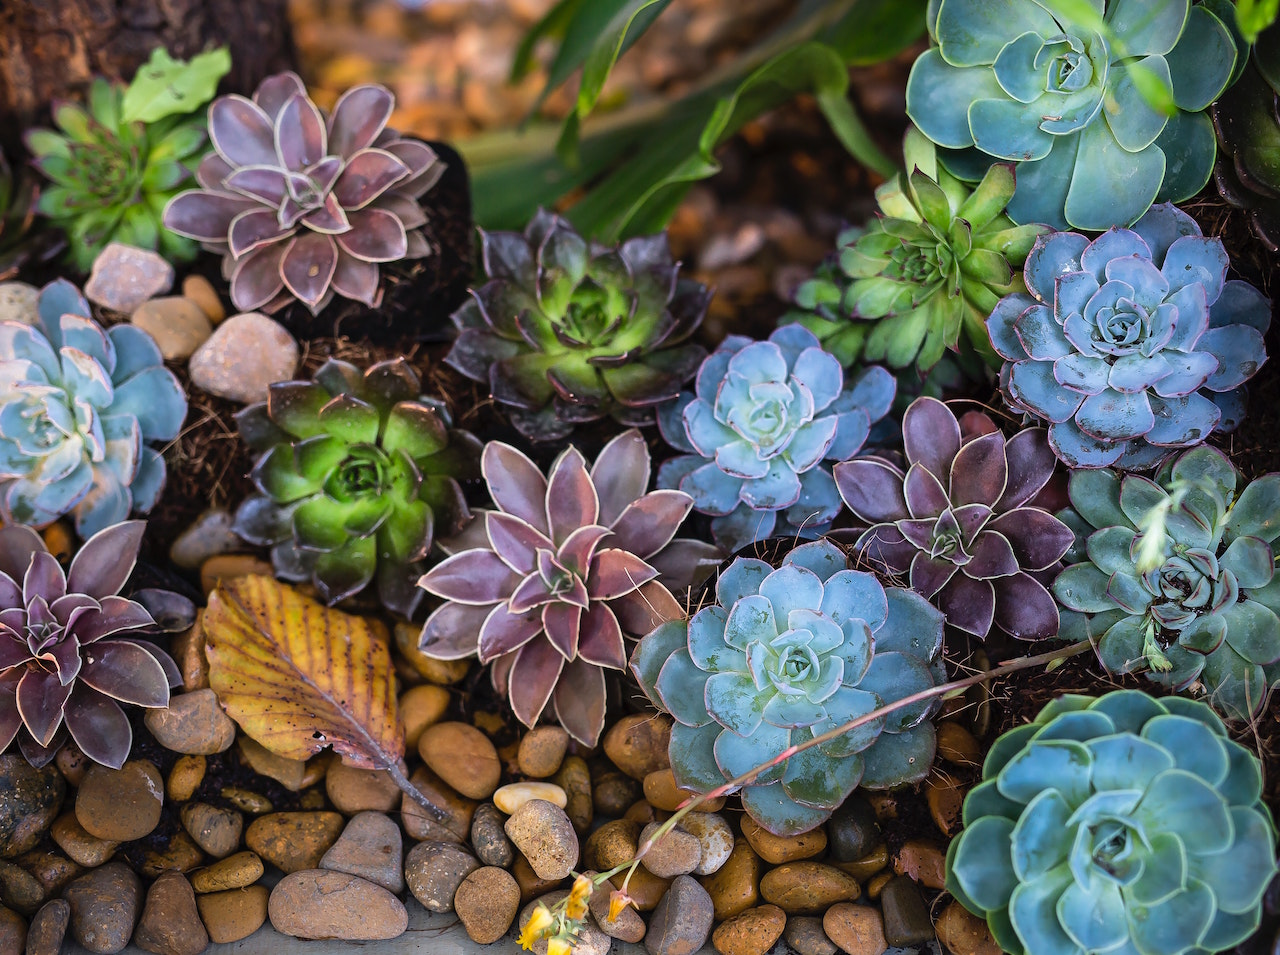 Assorted succulents of green and purple in a garden